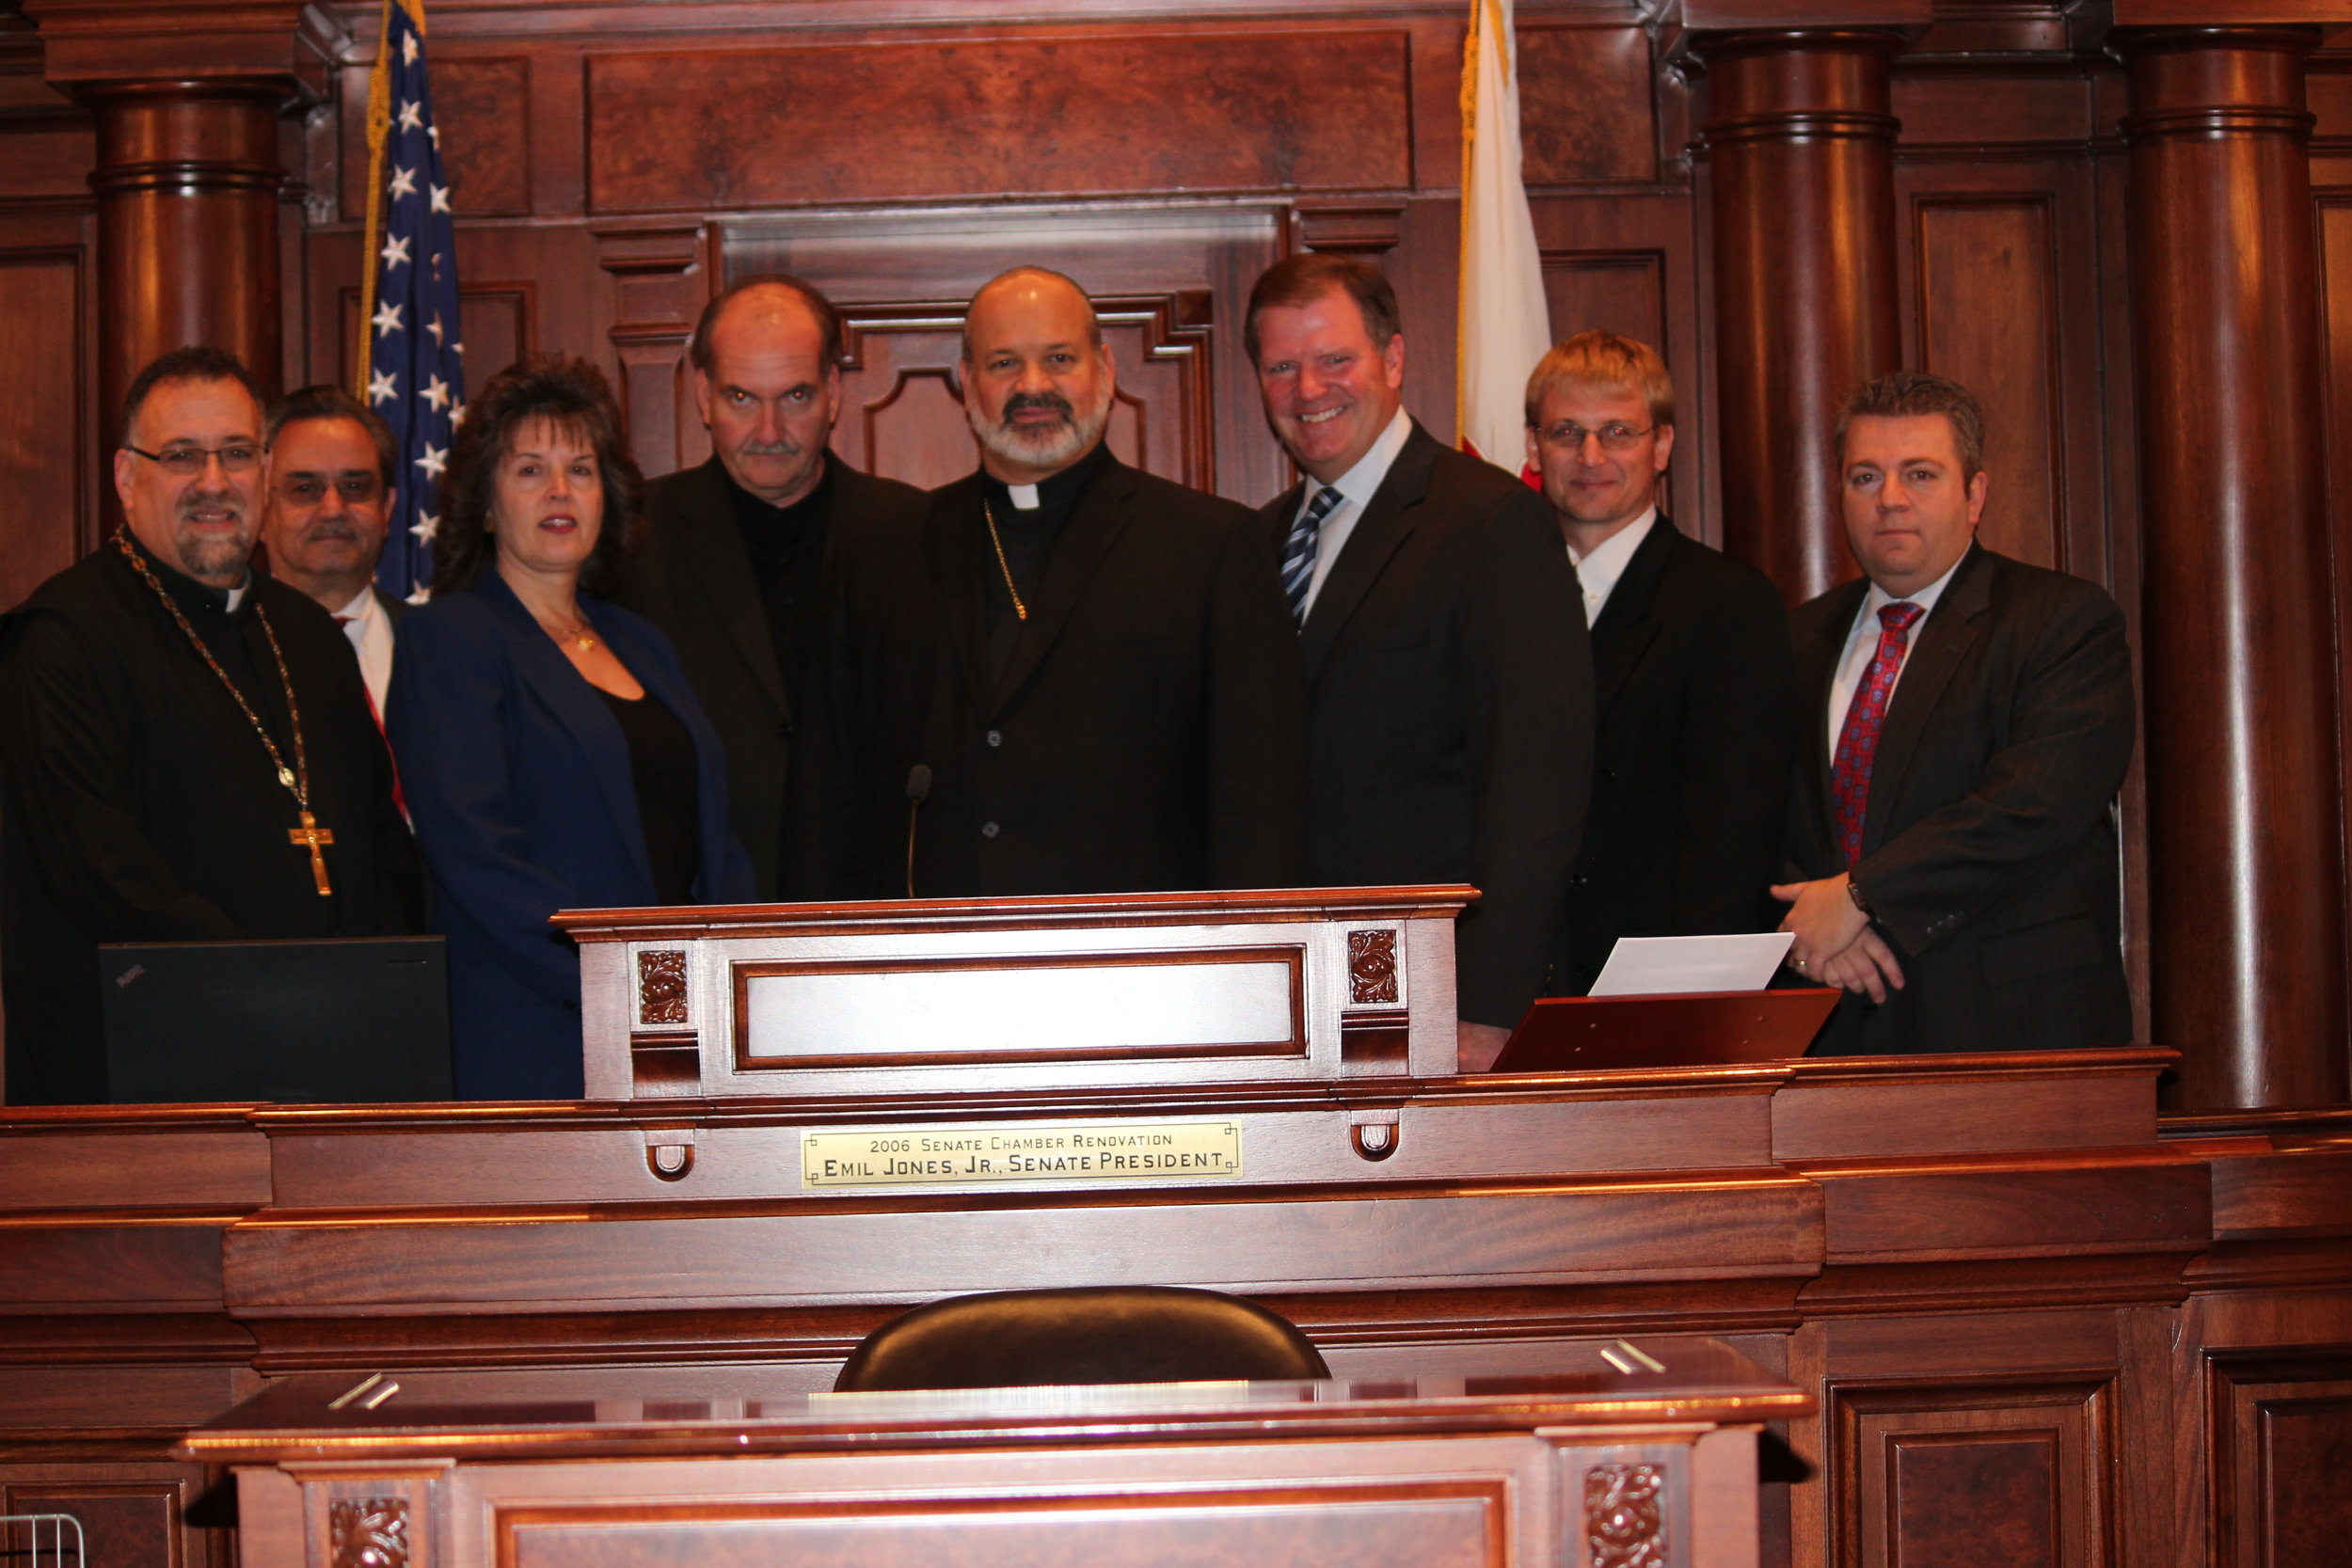 At the Senate President's podium  In the Balcony of the Illinois State Capitol. From left to right:Fr. George Pyle (Pastor of St. Anthony, Springfield, IL),Nick Xamis (Pres. Parish Council, St. Anthony GOC, Springfield, IL),Katena andFrank and Lagouros, His Grace Bishop Demetrios, Senator Bill Bradley, John Ackerman, George Vranas (Pres. Parish Council, St. Nicholas GOC,Oak Lawn, IL)